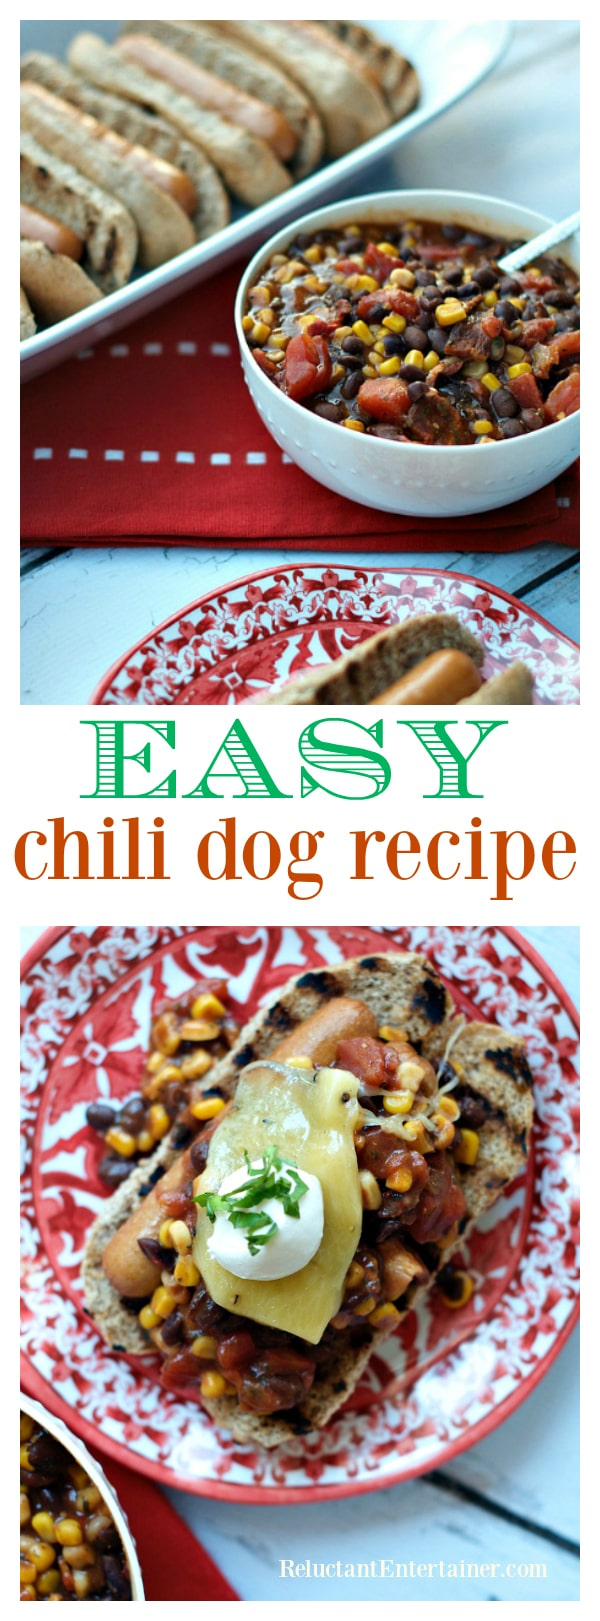 Easy Chili Dog Recipe